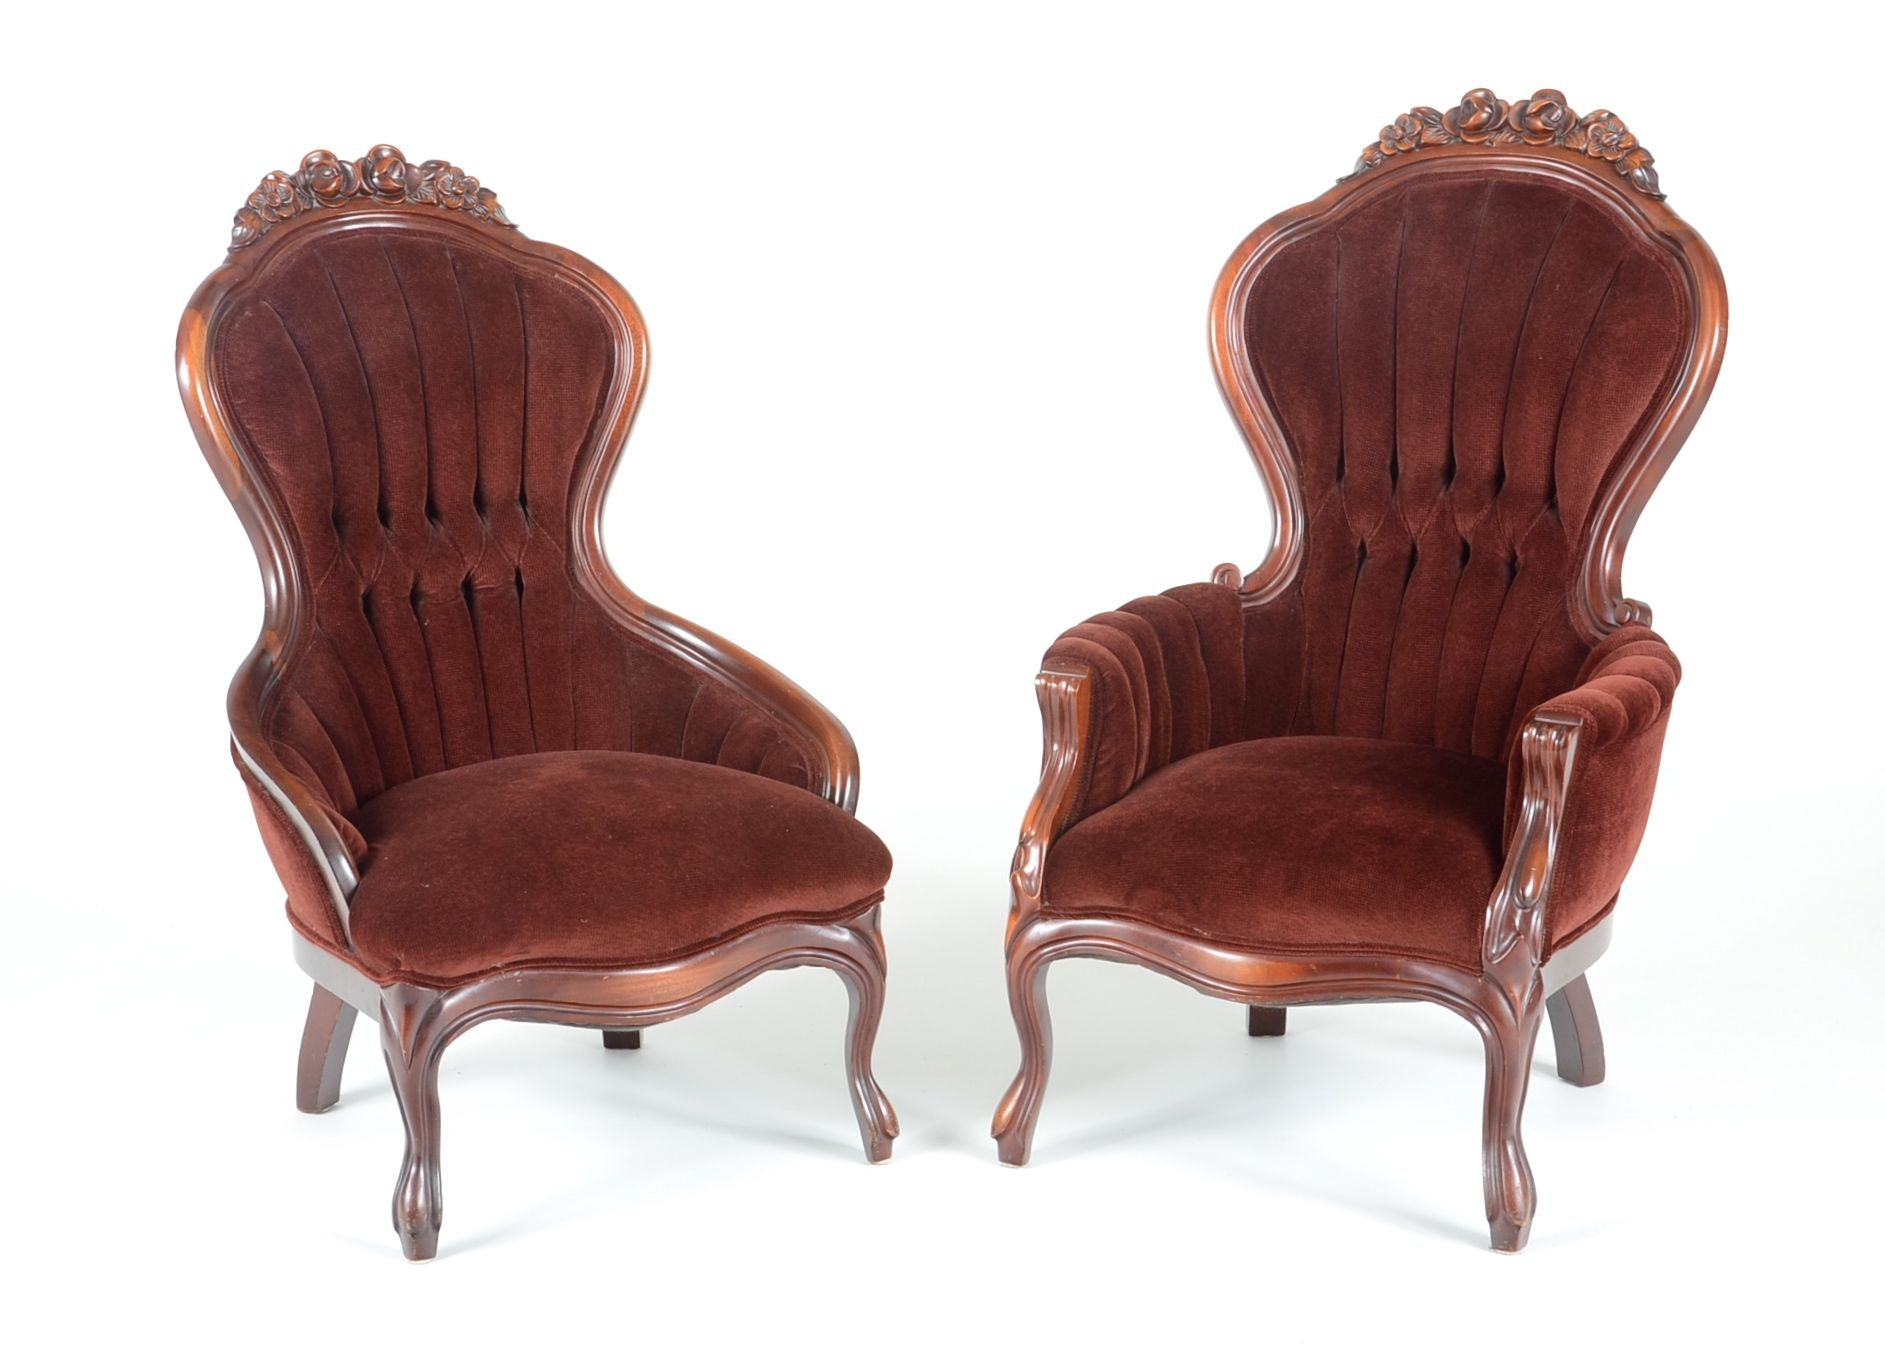 Pair Of Victorian Style Womenu0027s Parlor Chairs